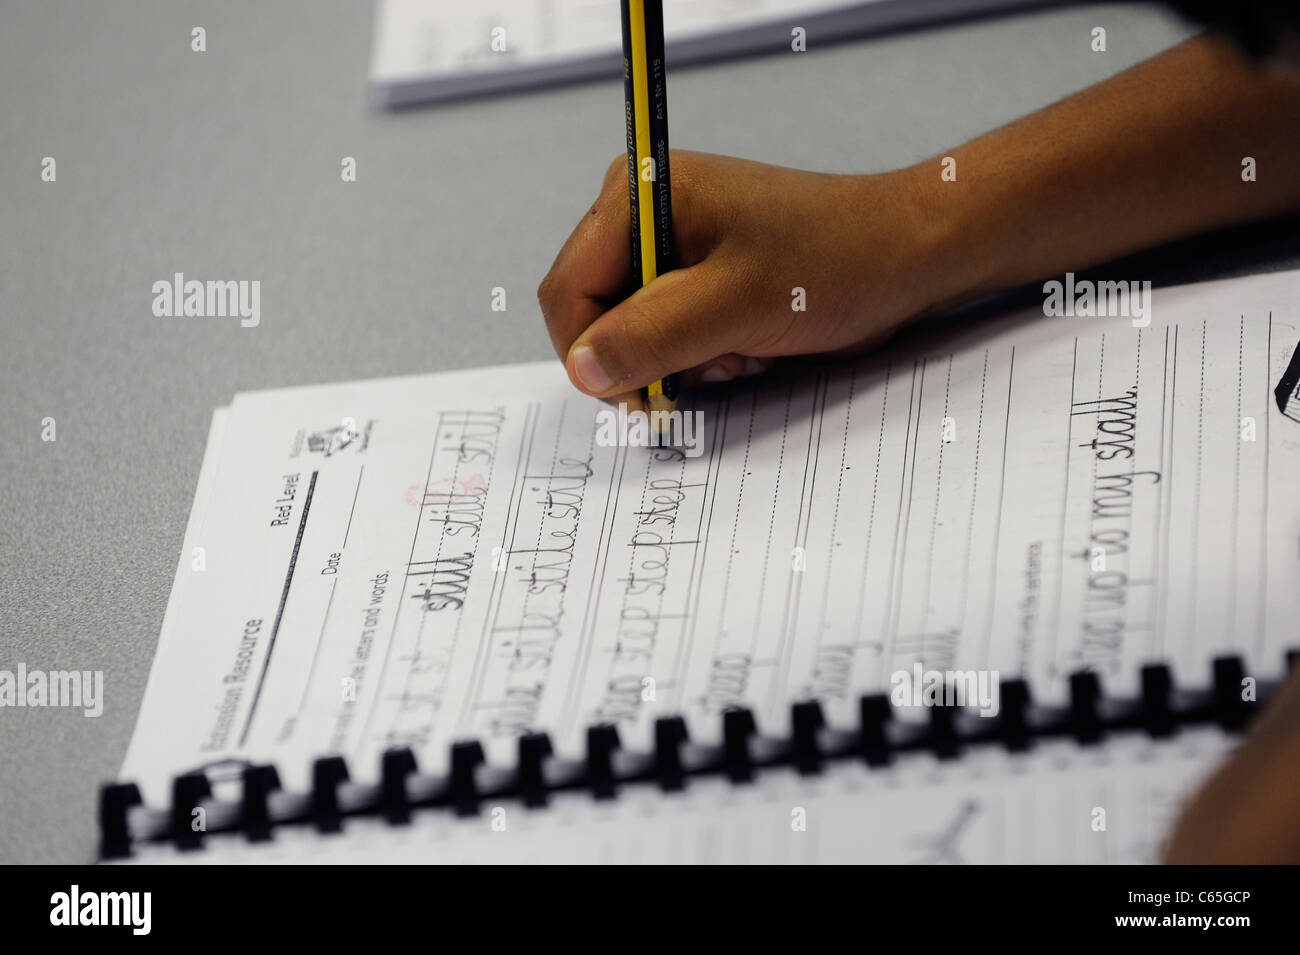 Afro-Caribbean school student hand practicing writing basic English with pencil on lined paper - Stock Image